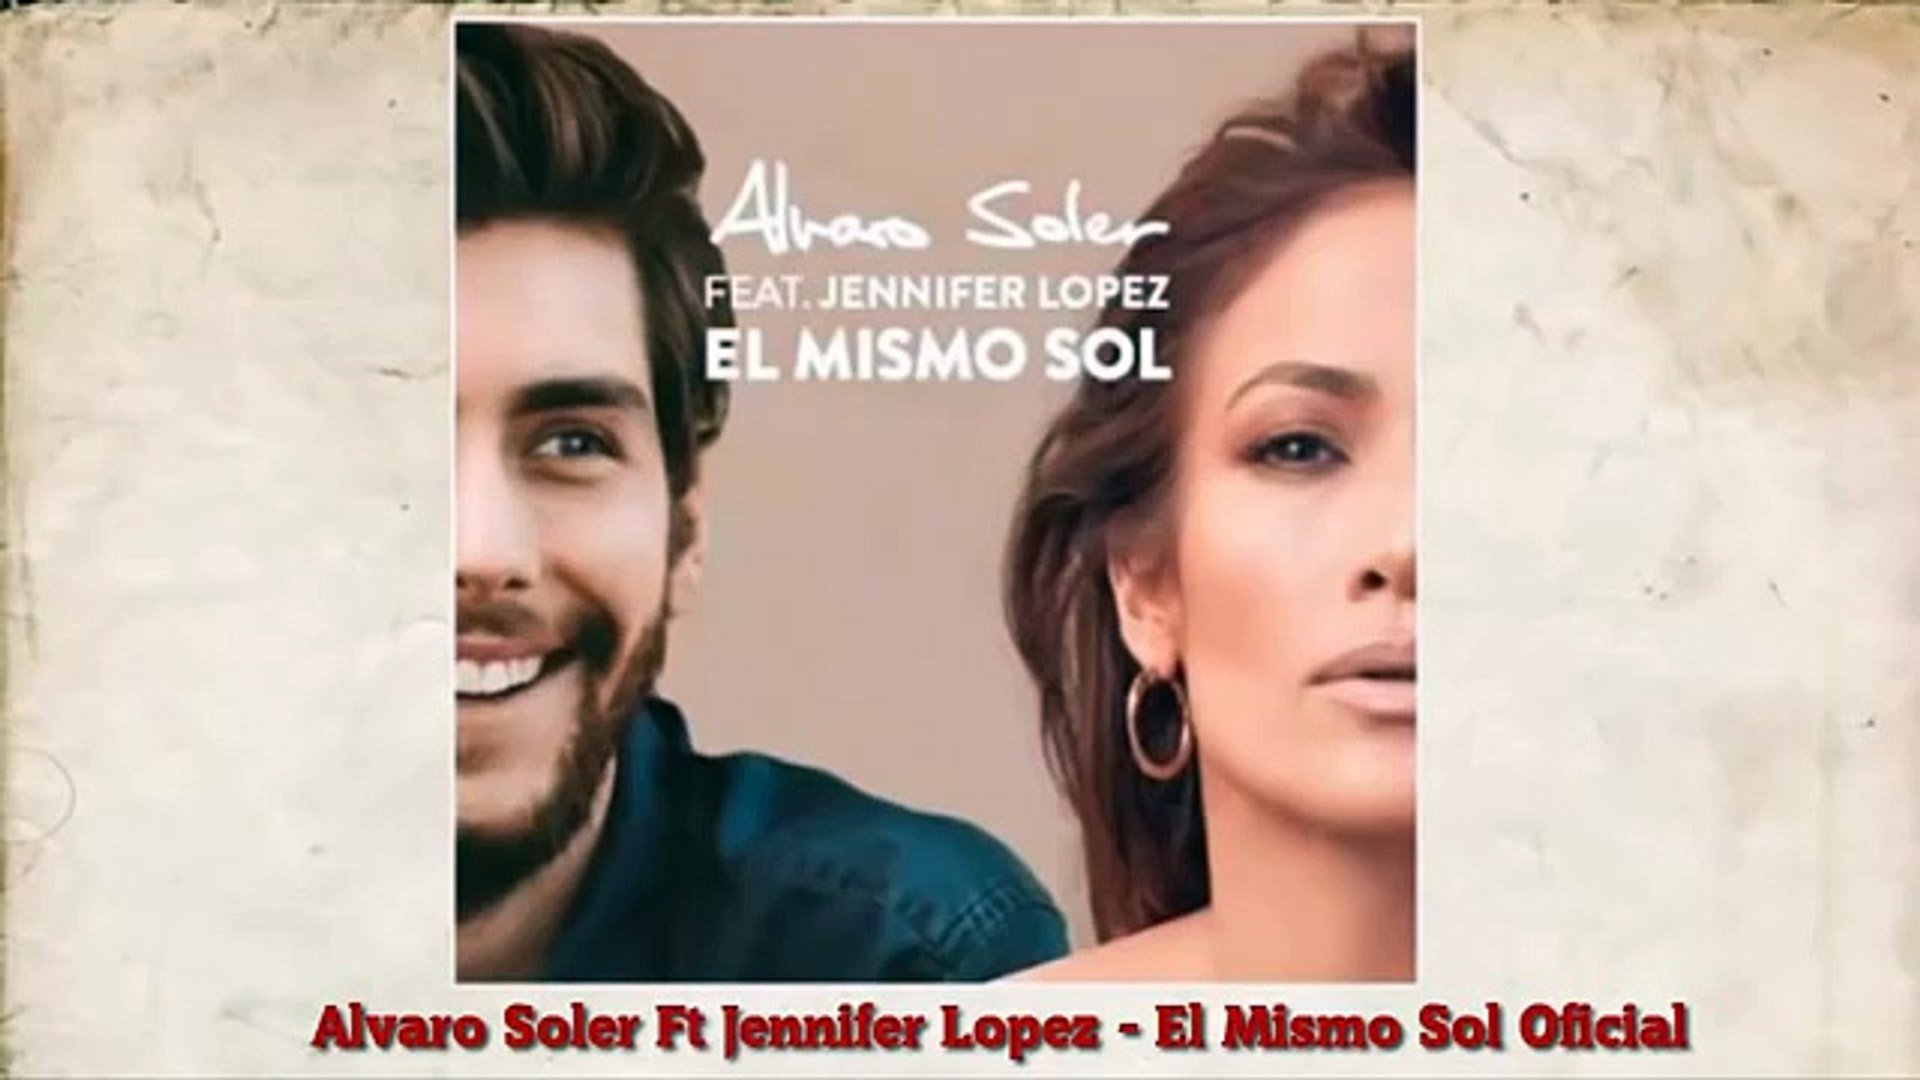 Alvaro Soler El Mismo Sol Ft Jennifer Lopez Oficial Audio Dailymotion Video